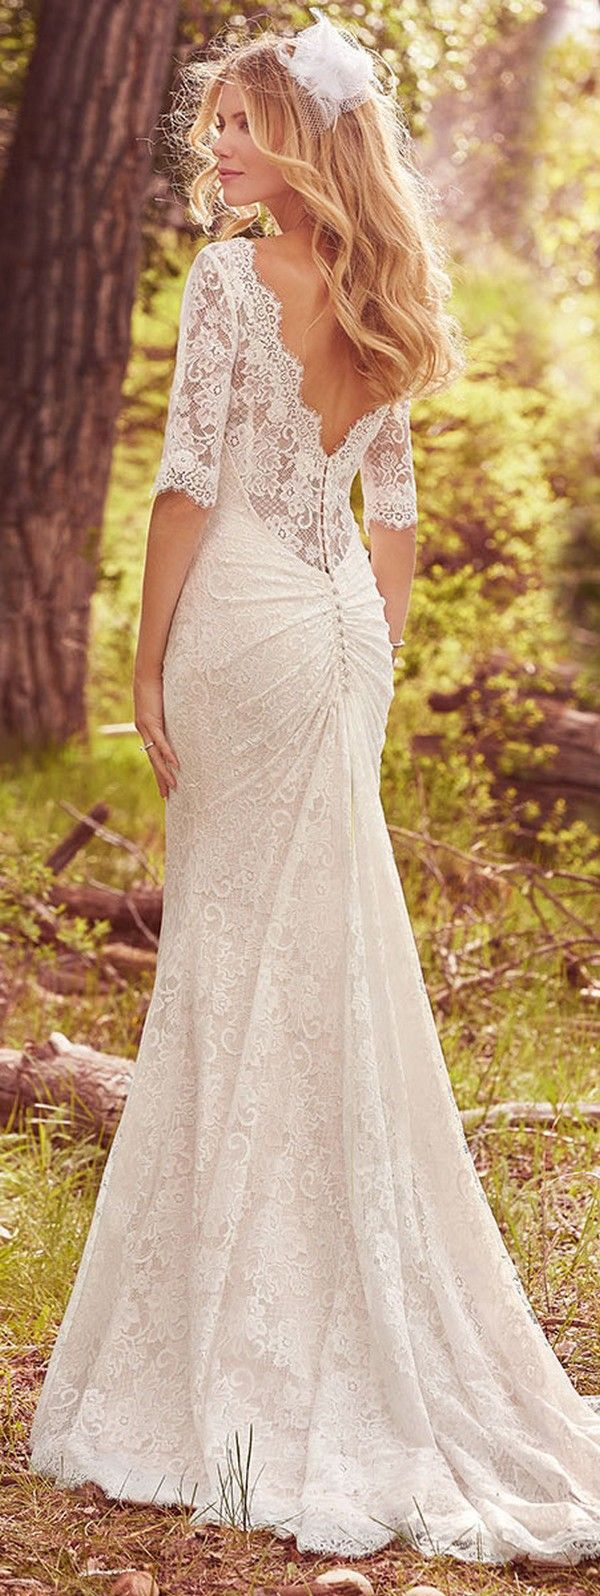 Top 20 Vintage Wedding Dresses for 2017 Trends | Pinterest | Vintage ...